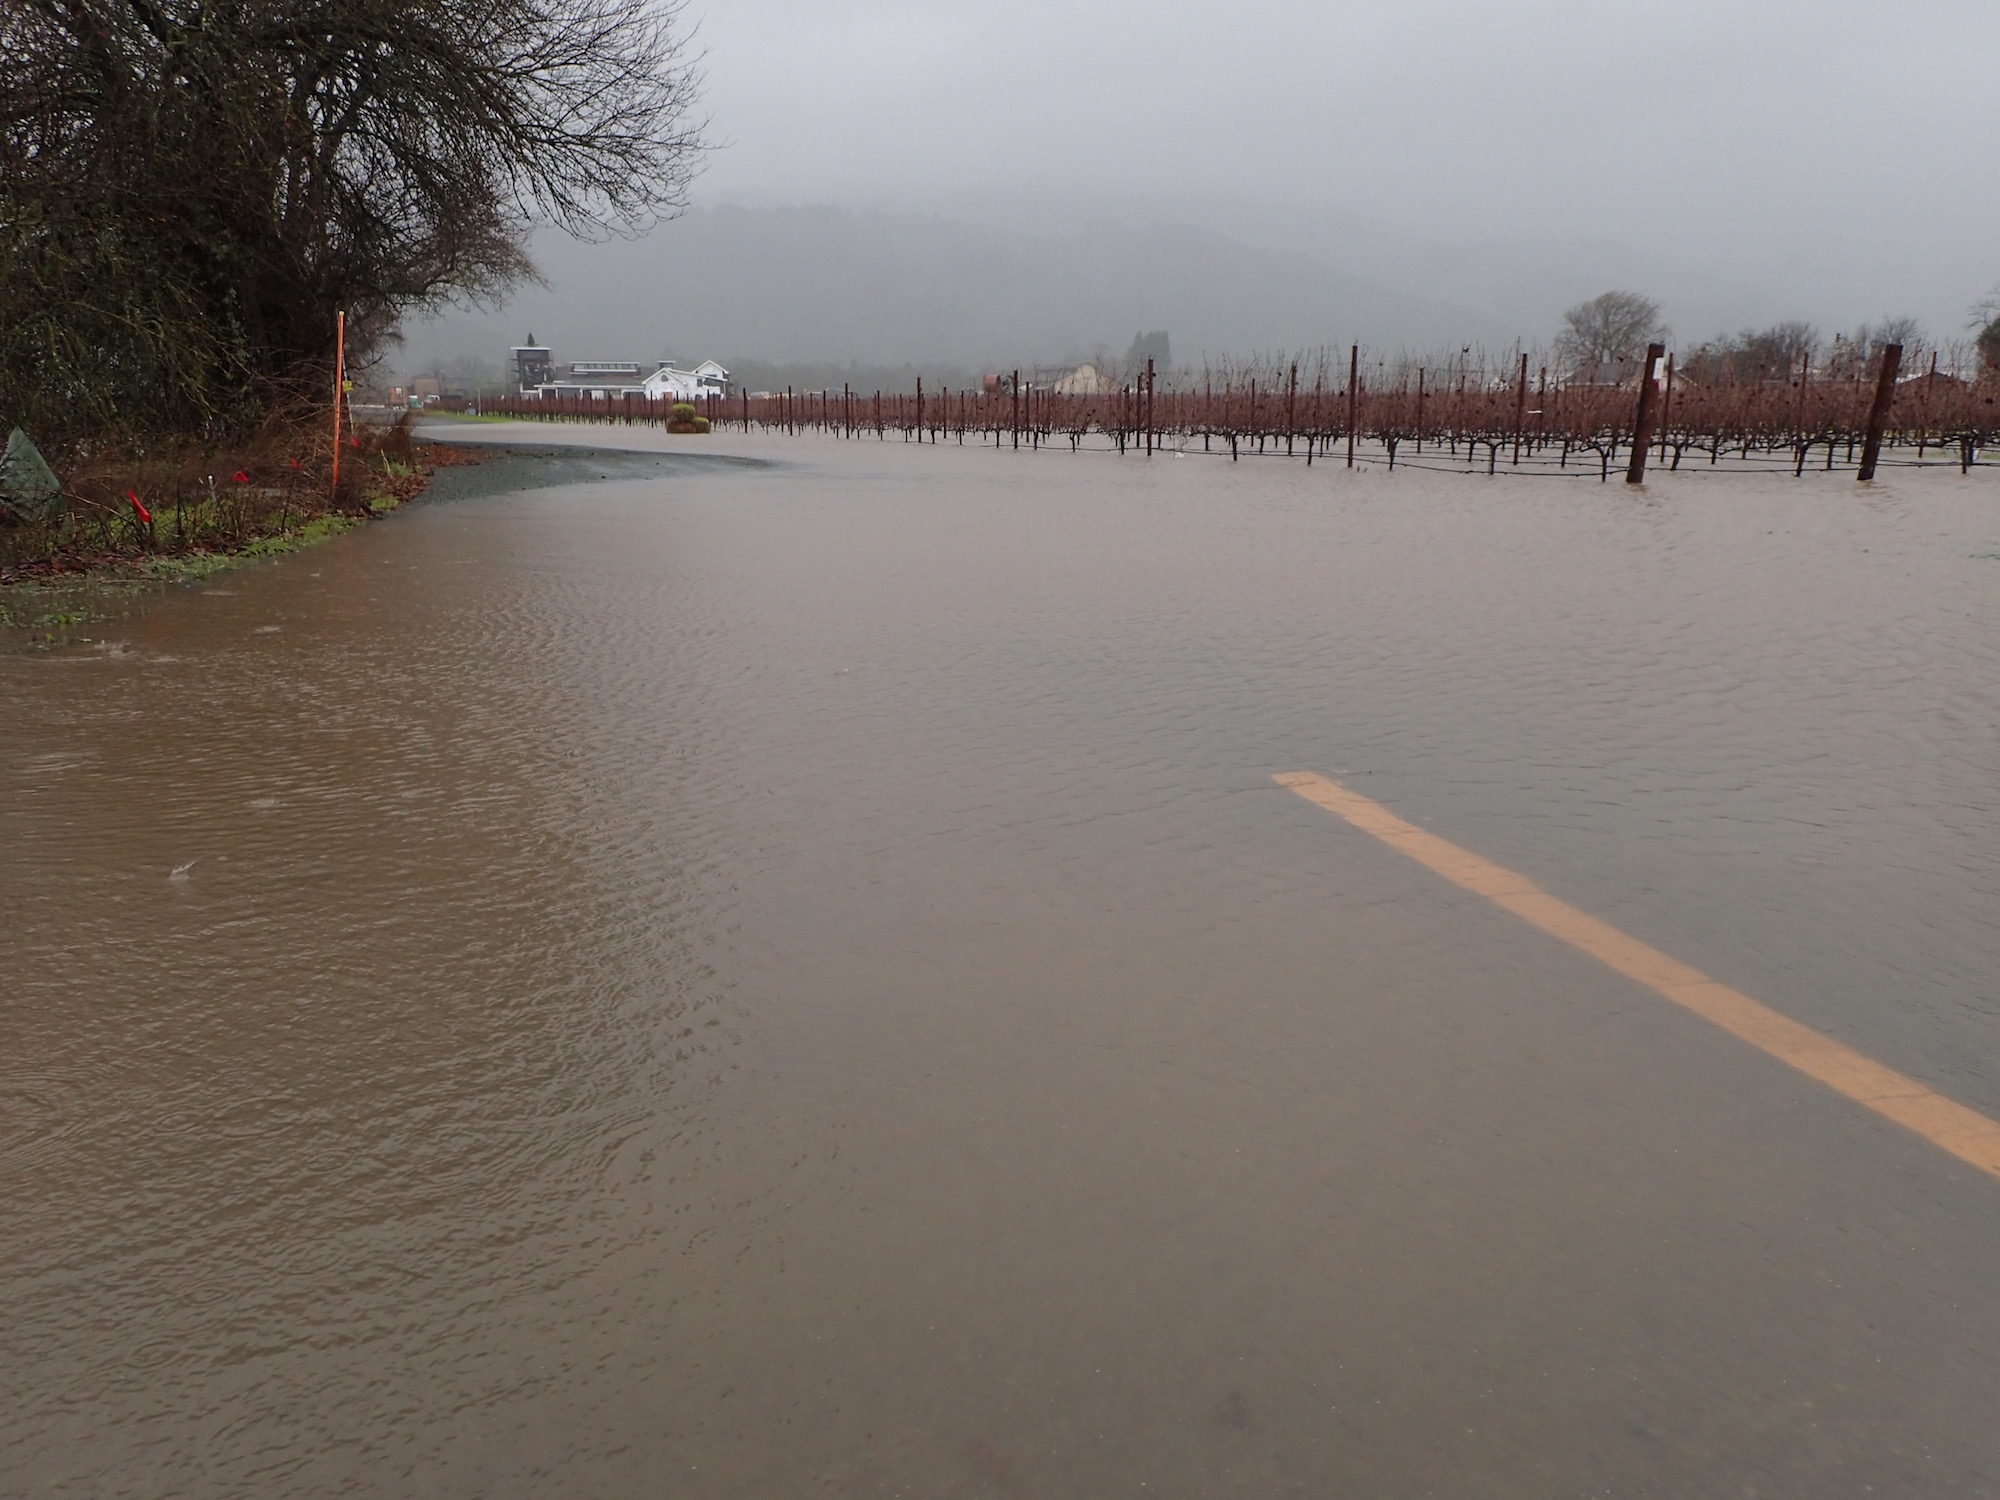 Flooded vineyards along Hwy 29 in the Napa Valley. Standing water like this will slowly sink in, helping to recharge groundwater aquifers.